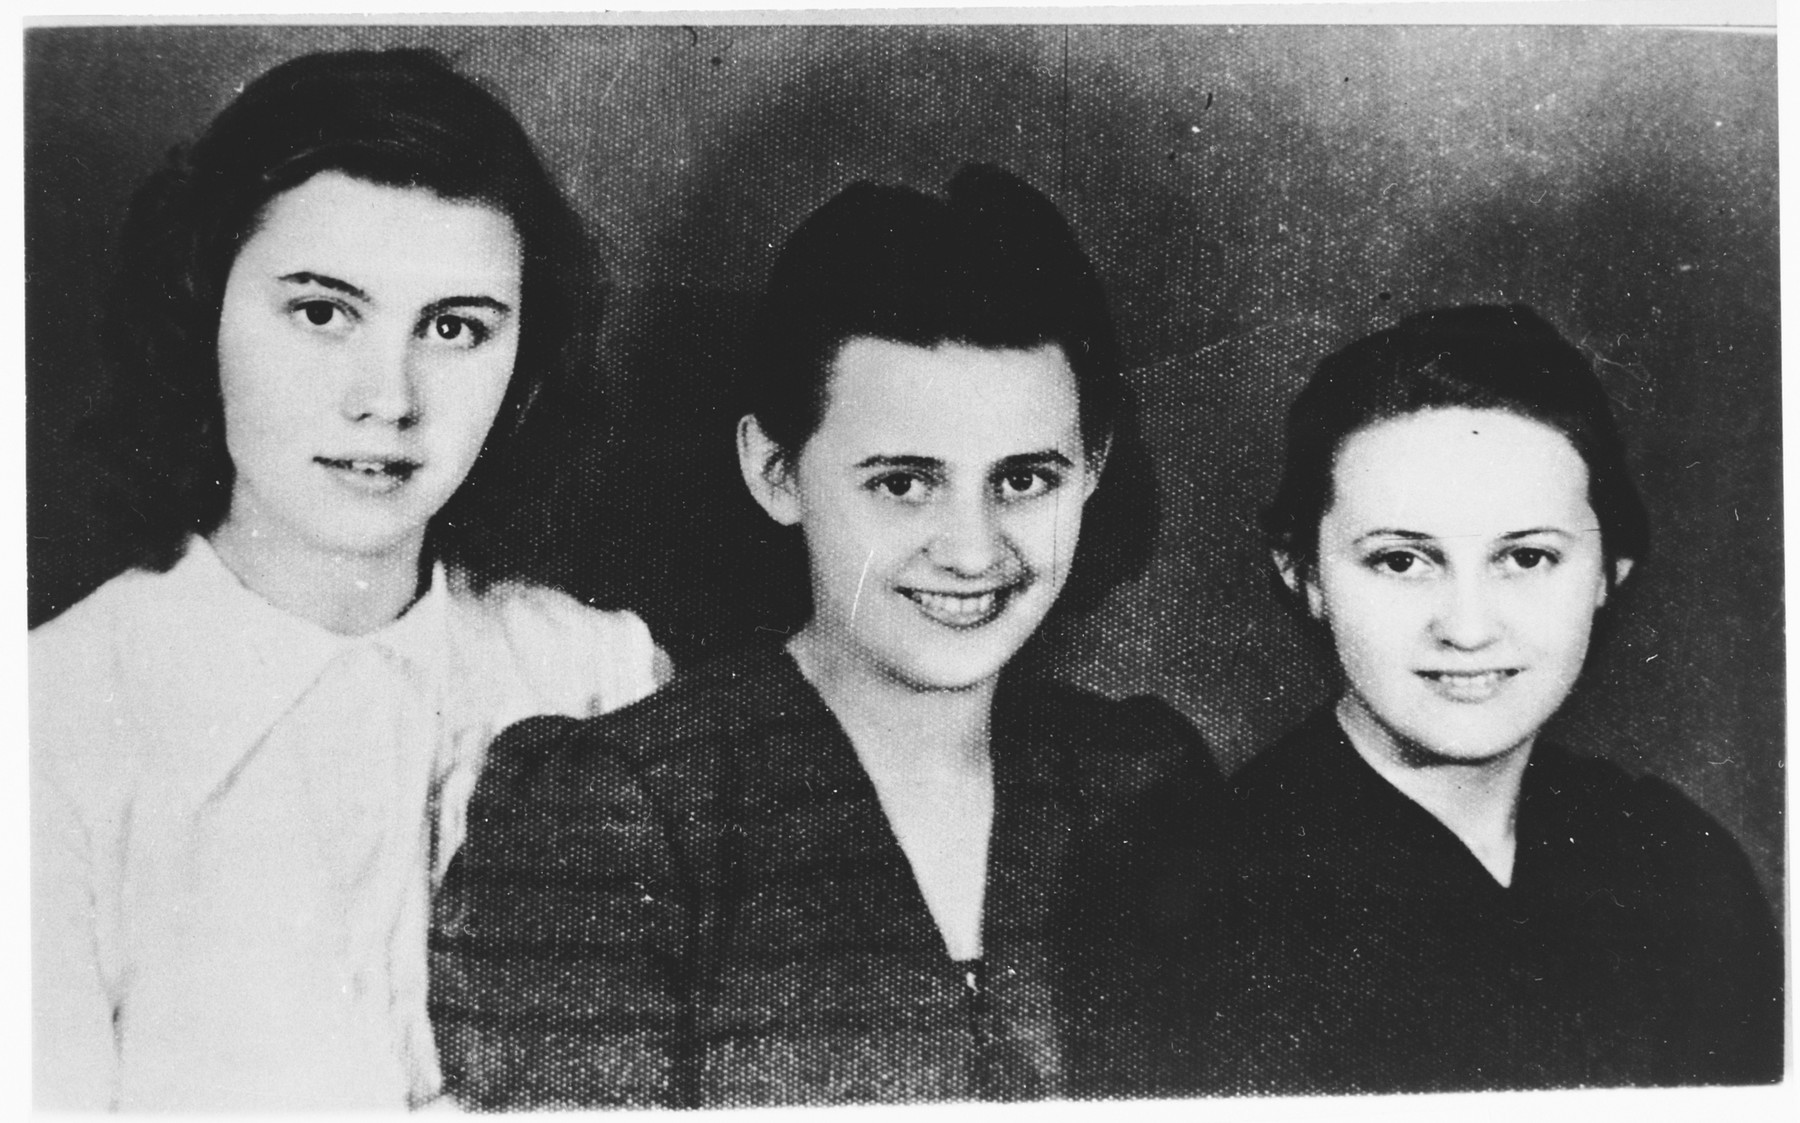 Studio portrait of the Ditrik sisters from Zenica, Bosnia, [possibly members of the Yugoslav resistance] who were deported to Jasenovac on December 16, 1944.    Pictured from left to right are: Borka (18), Angelina (20), and Miroslava (16).  They were killed in Ustice, where the Una River meets the Sava River.